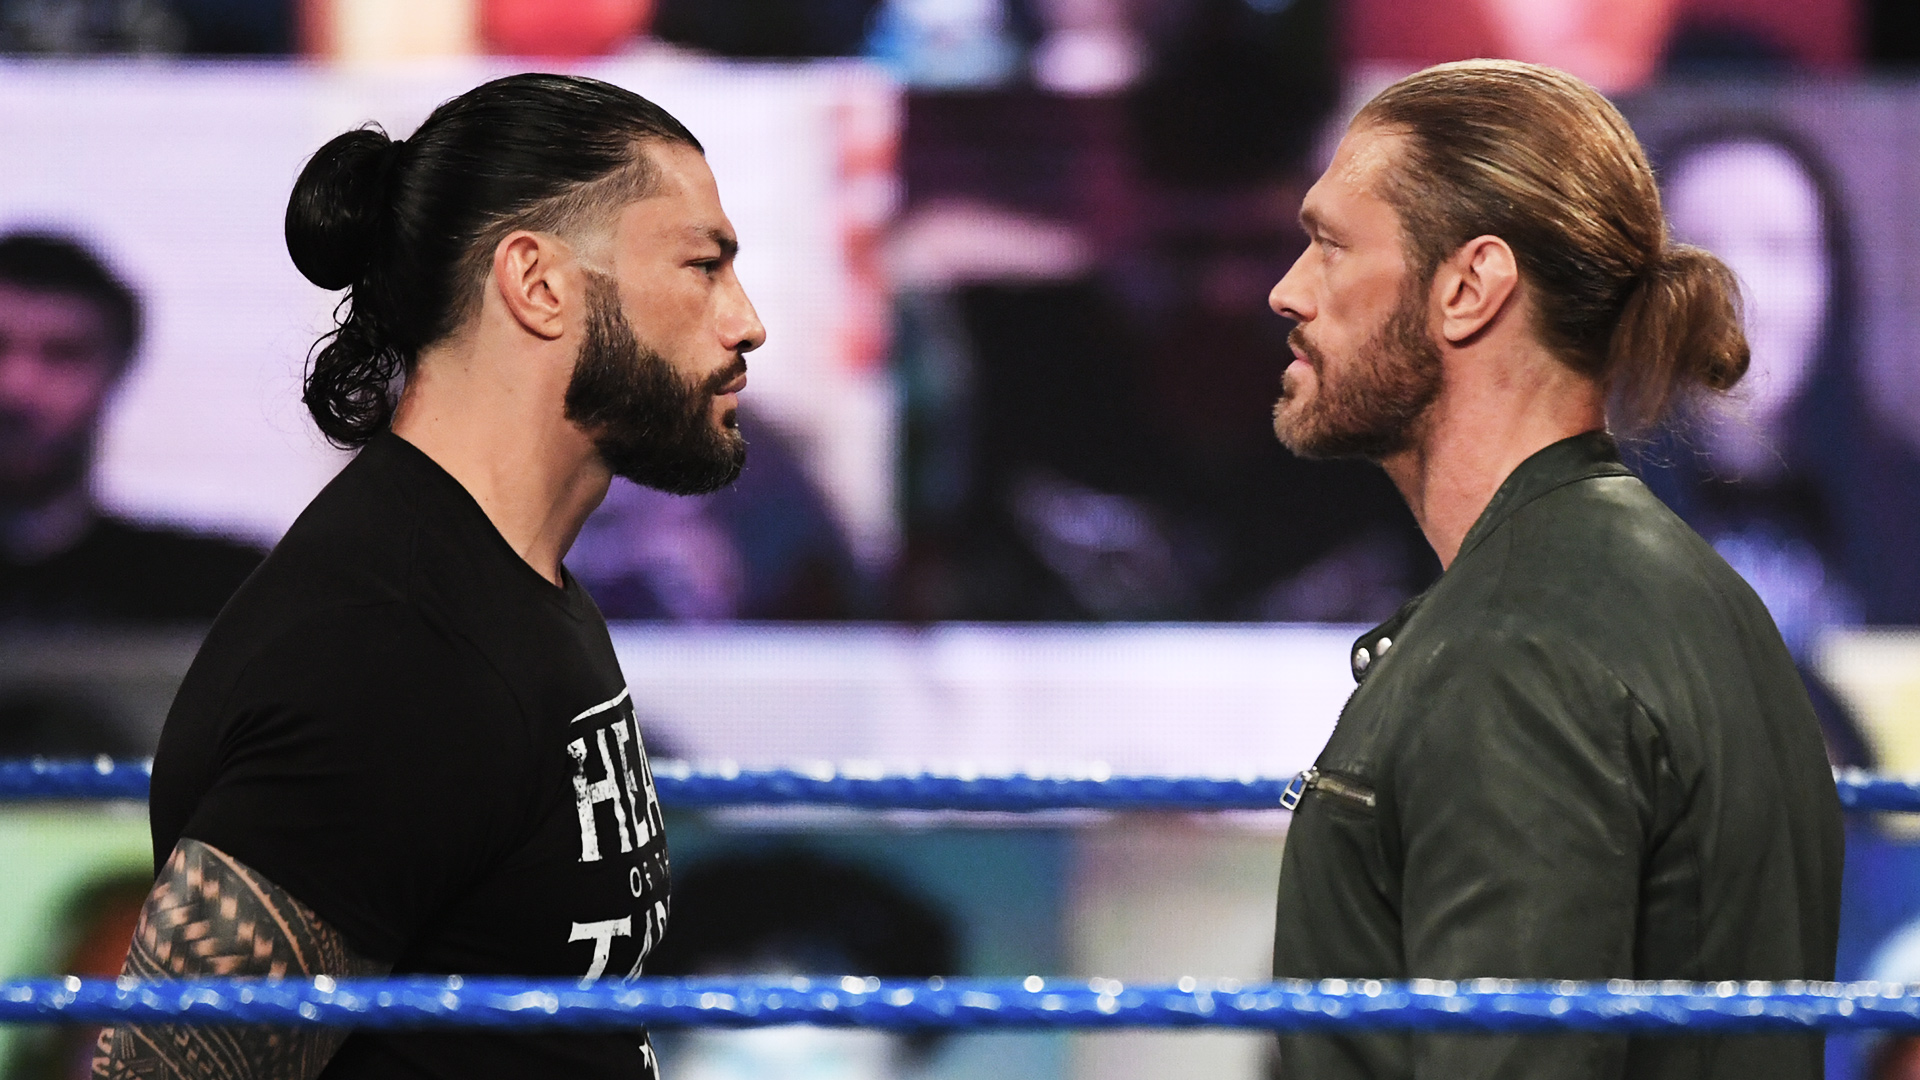 Edge chooses Roman Reigns as Wrestlemania opponent - THE SPORTS ROOM